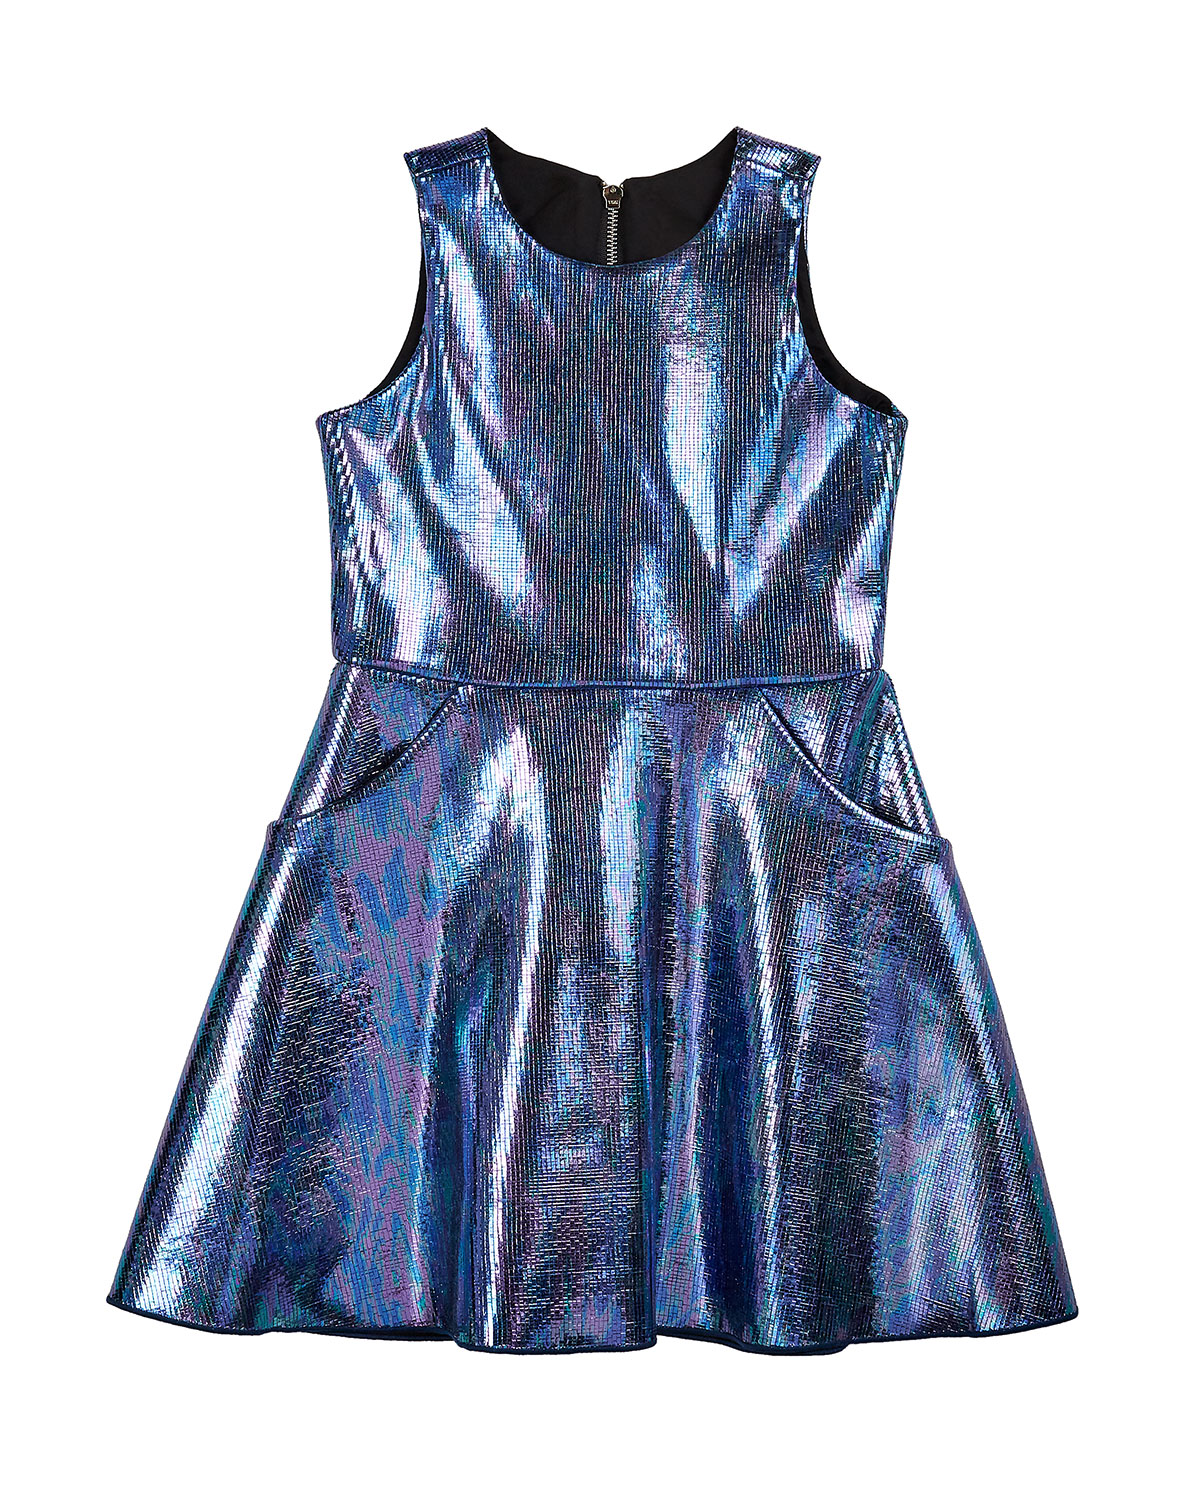 Zoe Girl's Metallic Foil Pocket Swing Dress, Size 7-14